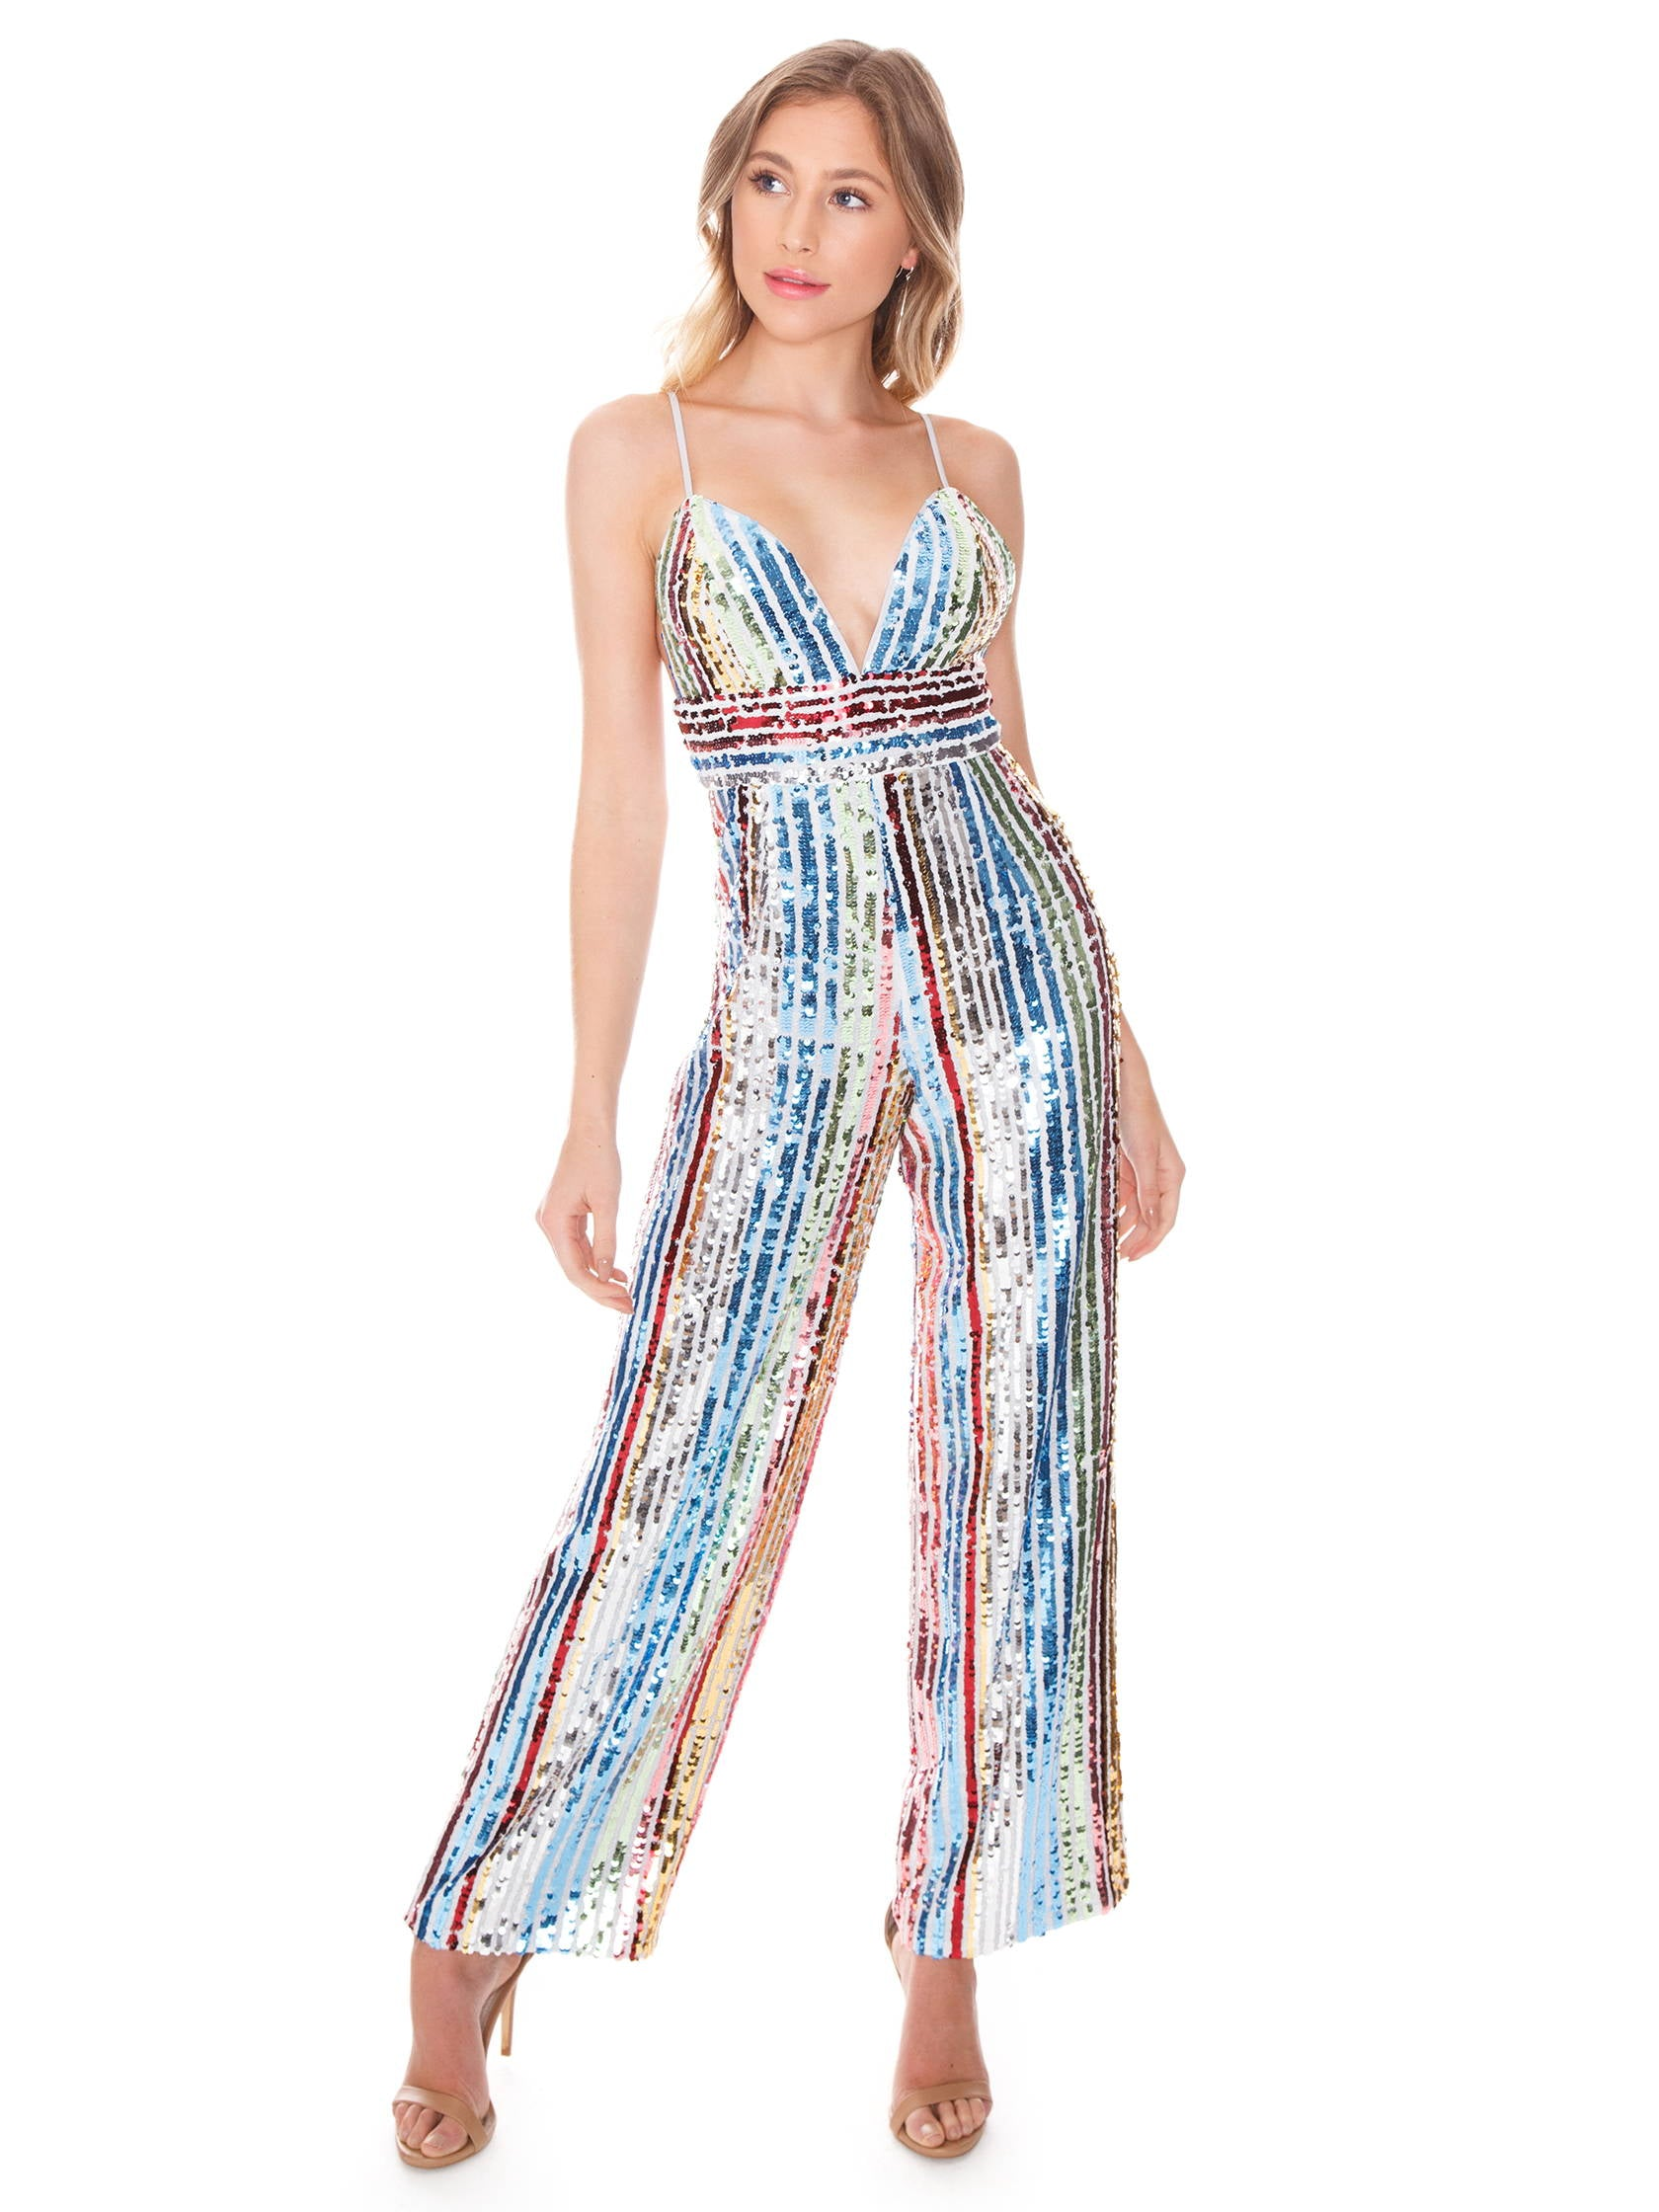 Woman wearing a jumpsuit rental from Saylor called Jojo Jumpsuit